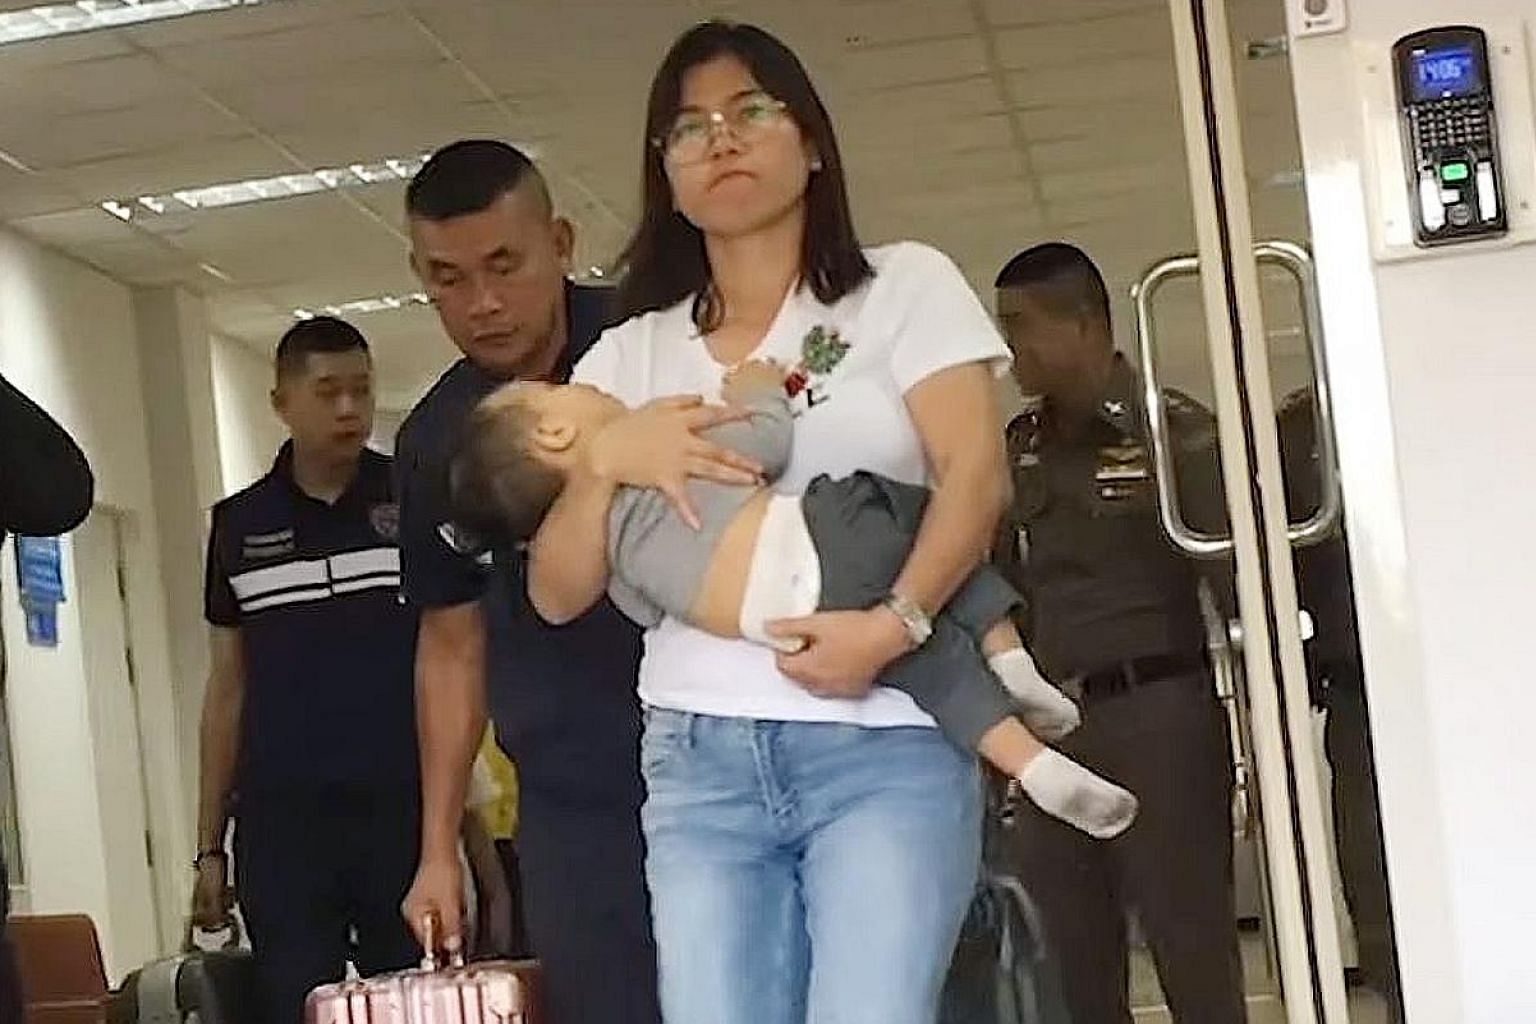 The wife of Myanmar's Arakan Army leader, Ms Hnin Zar Phyu, seen here with one of their children, had been detained in Thailand. PHOTO: RADIO FREE ASIA/YOUTUBE